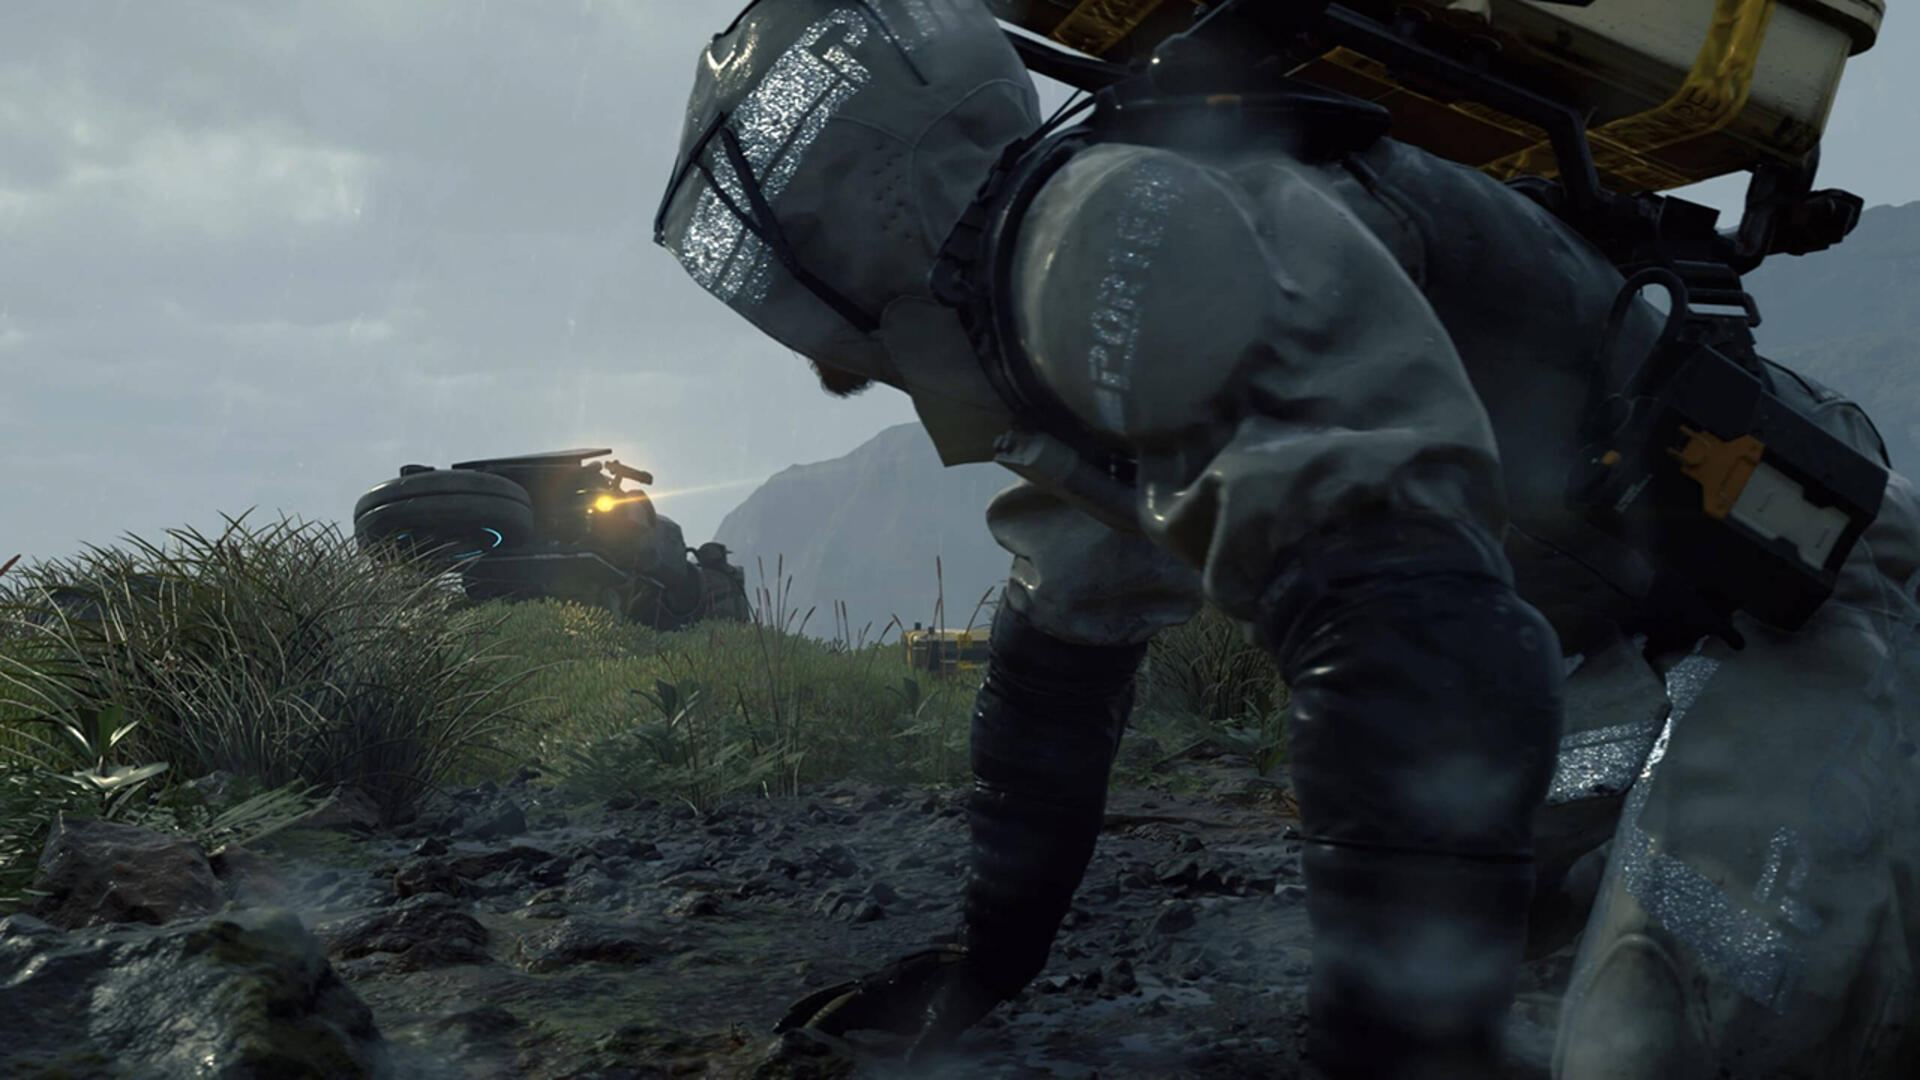 Death Stranding's Stealth Gameplay Has Shades of Metal Gear Solid, But Not the Whole Picture